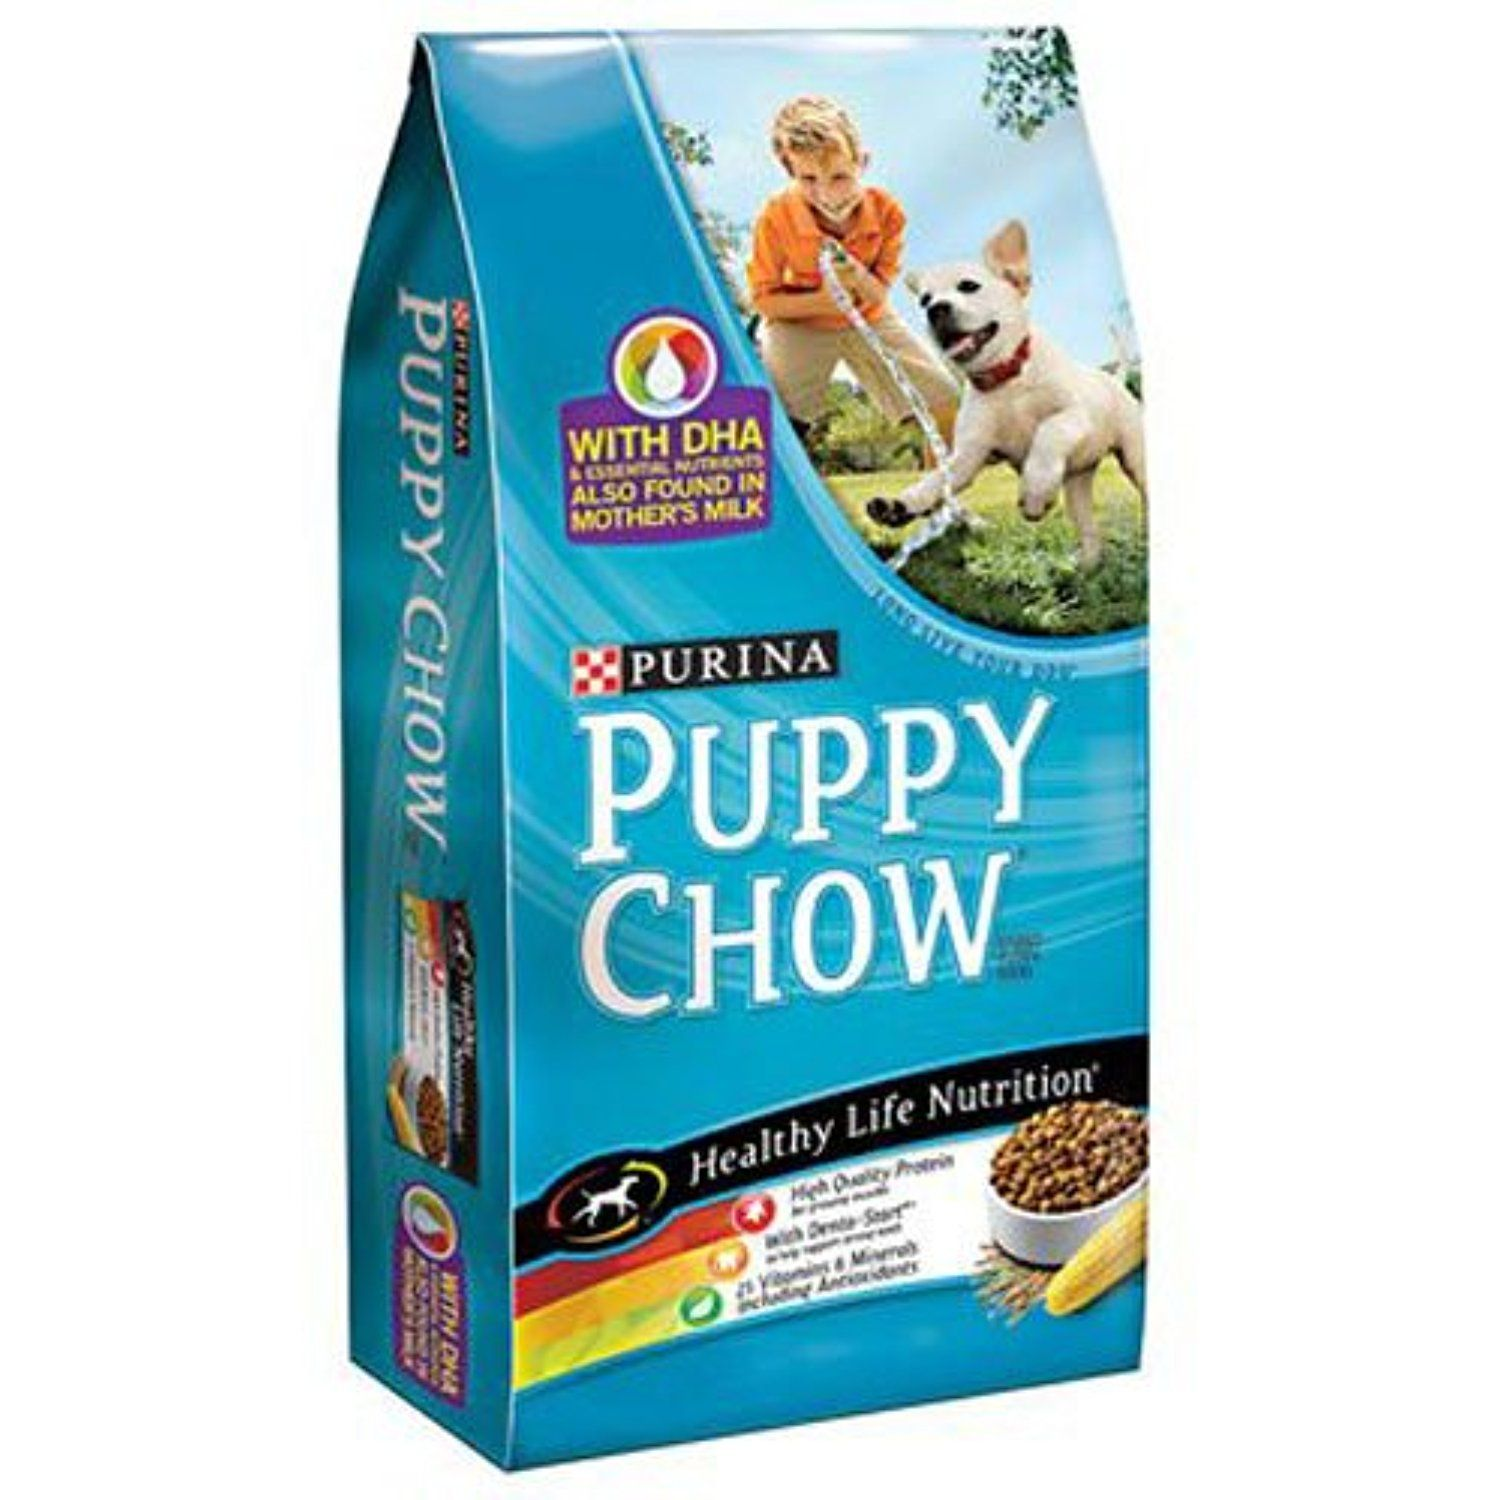 Purina 178108 Puppy Chow Complete Pet Food 32 Lb You Can Find